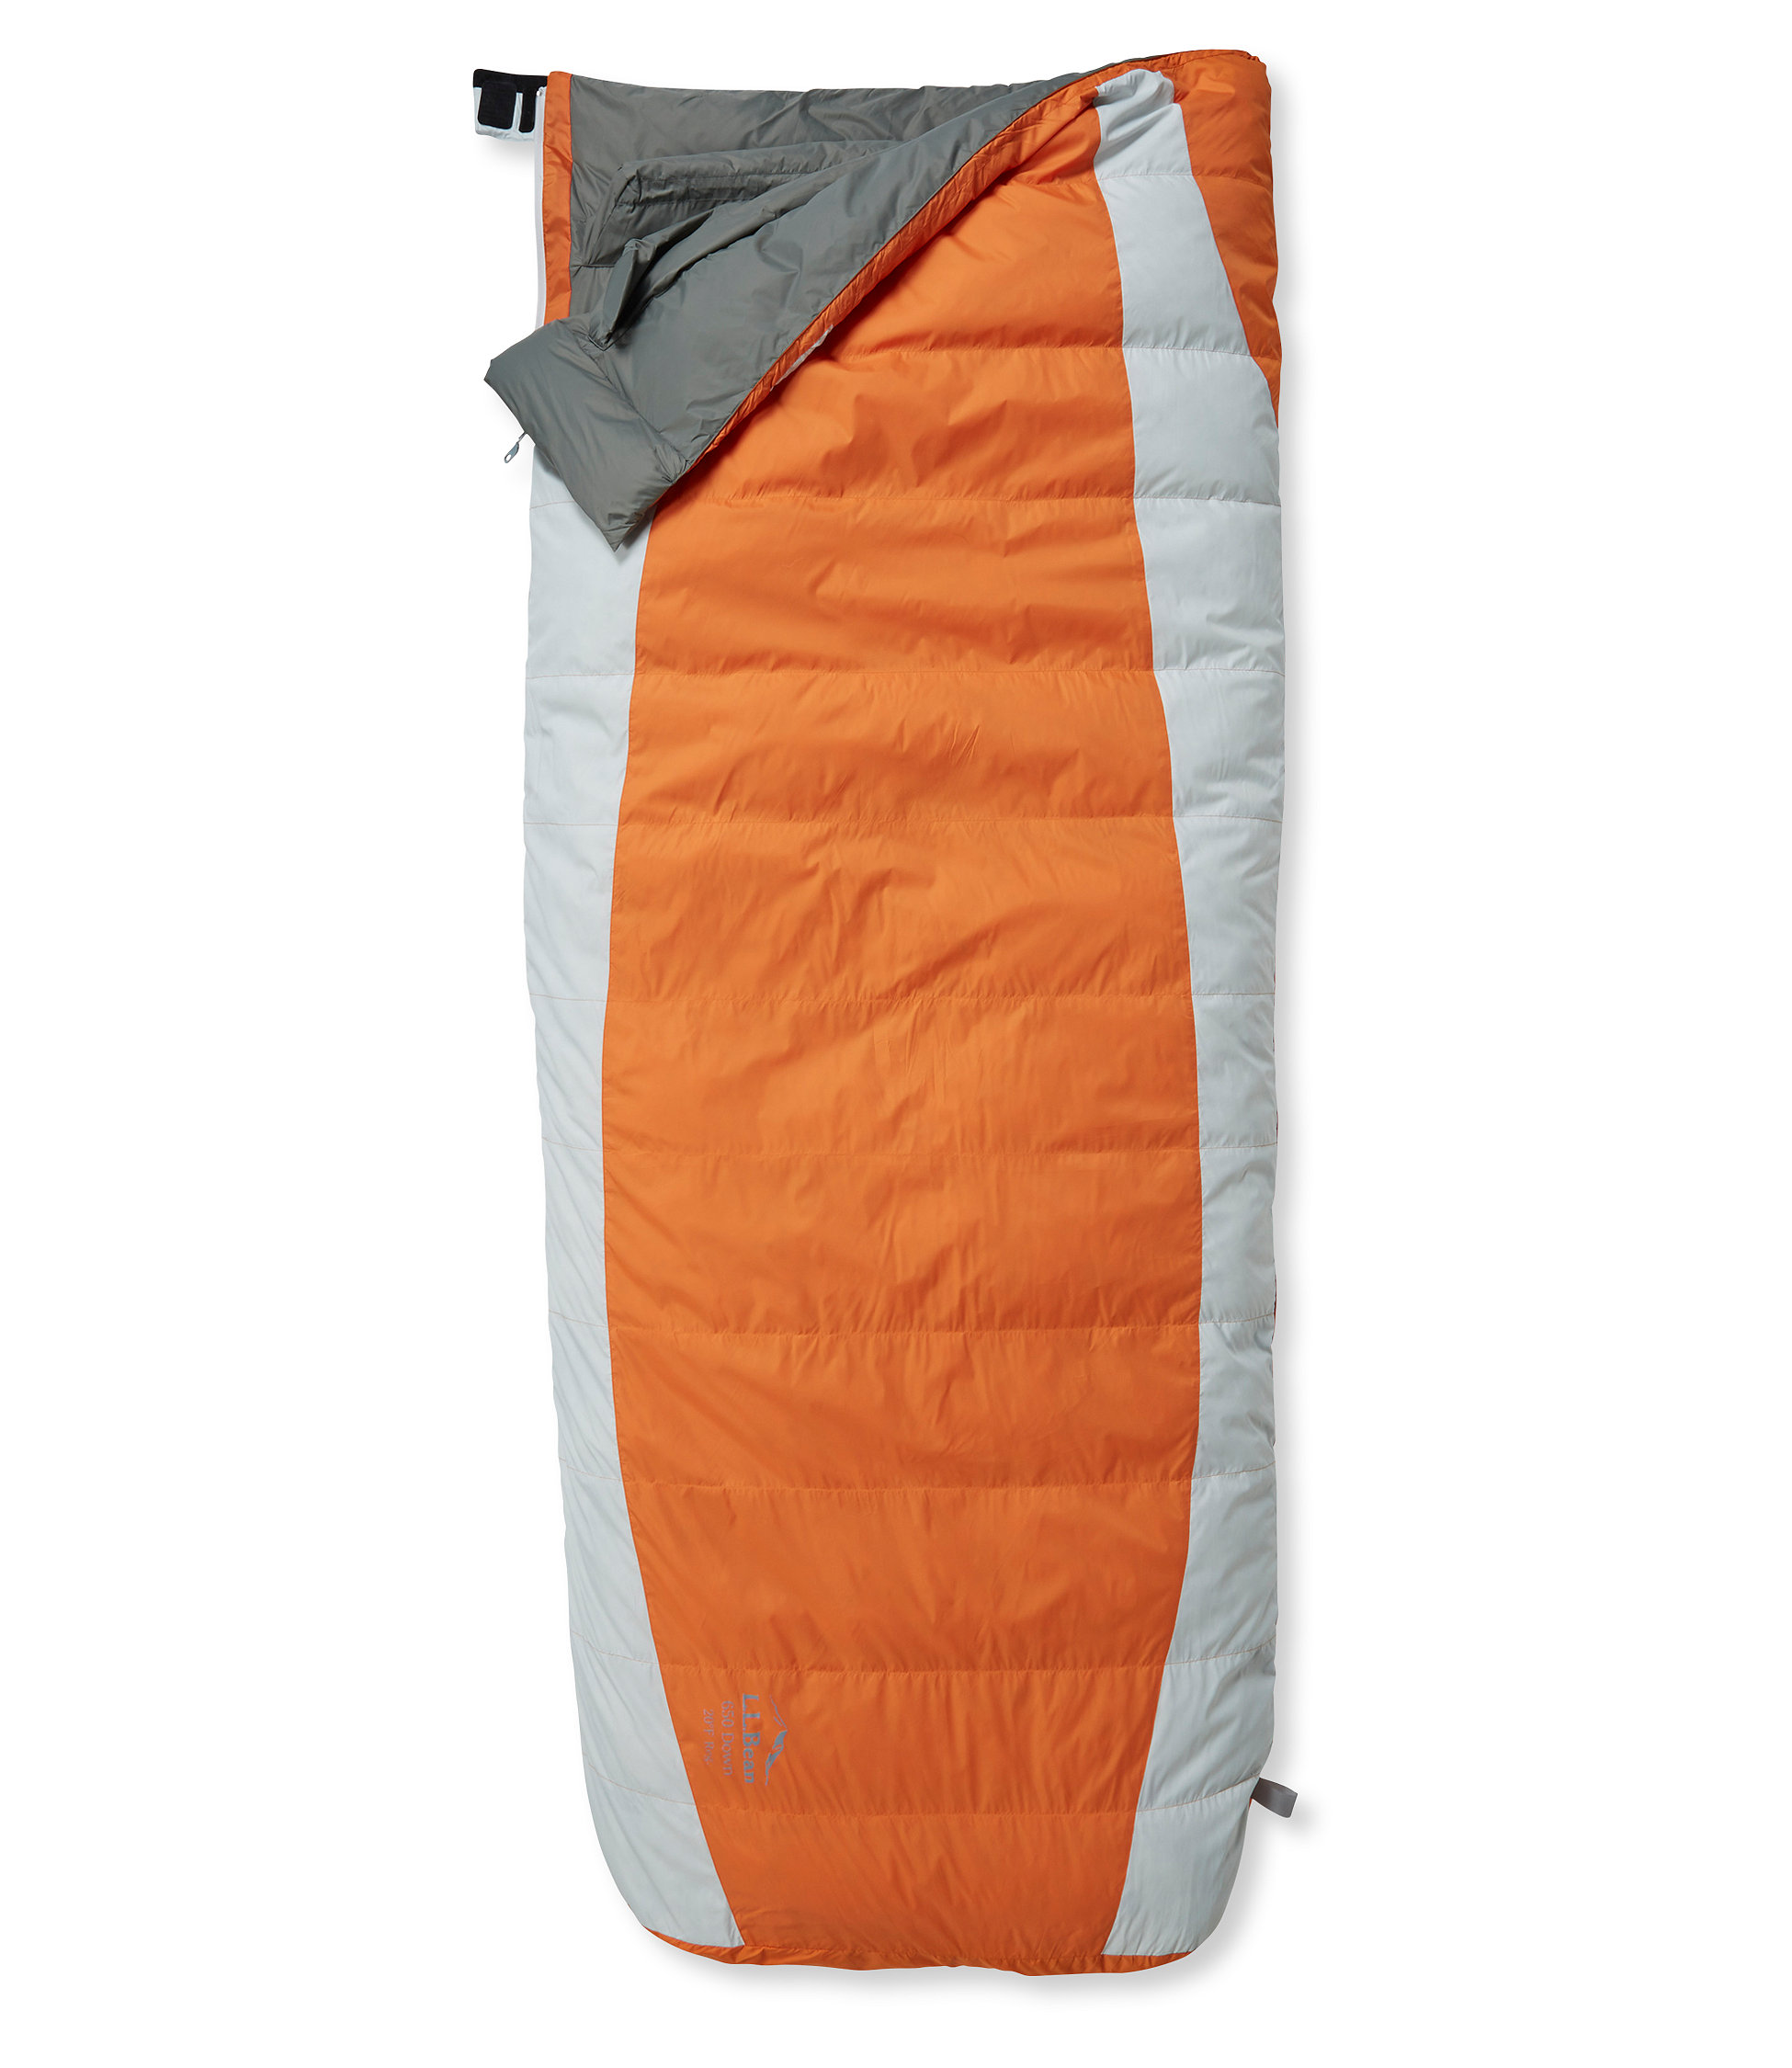 L.L.Bean Down Sleeping Bag with DownTek, Rectangular 20°